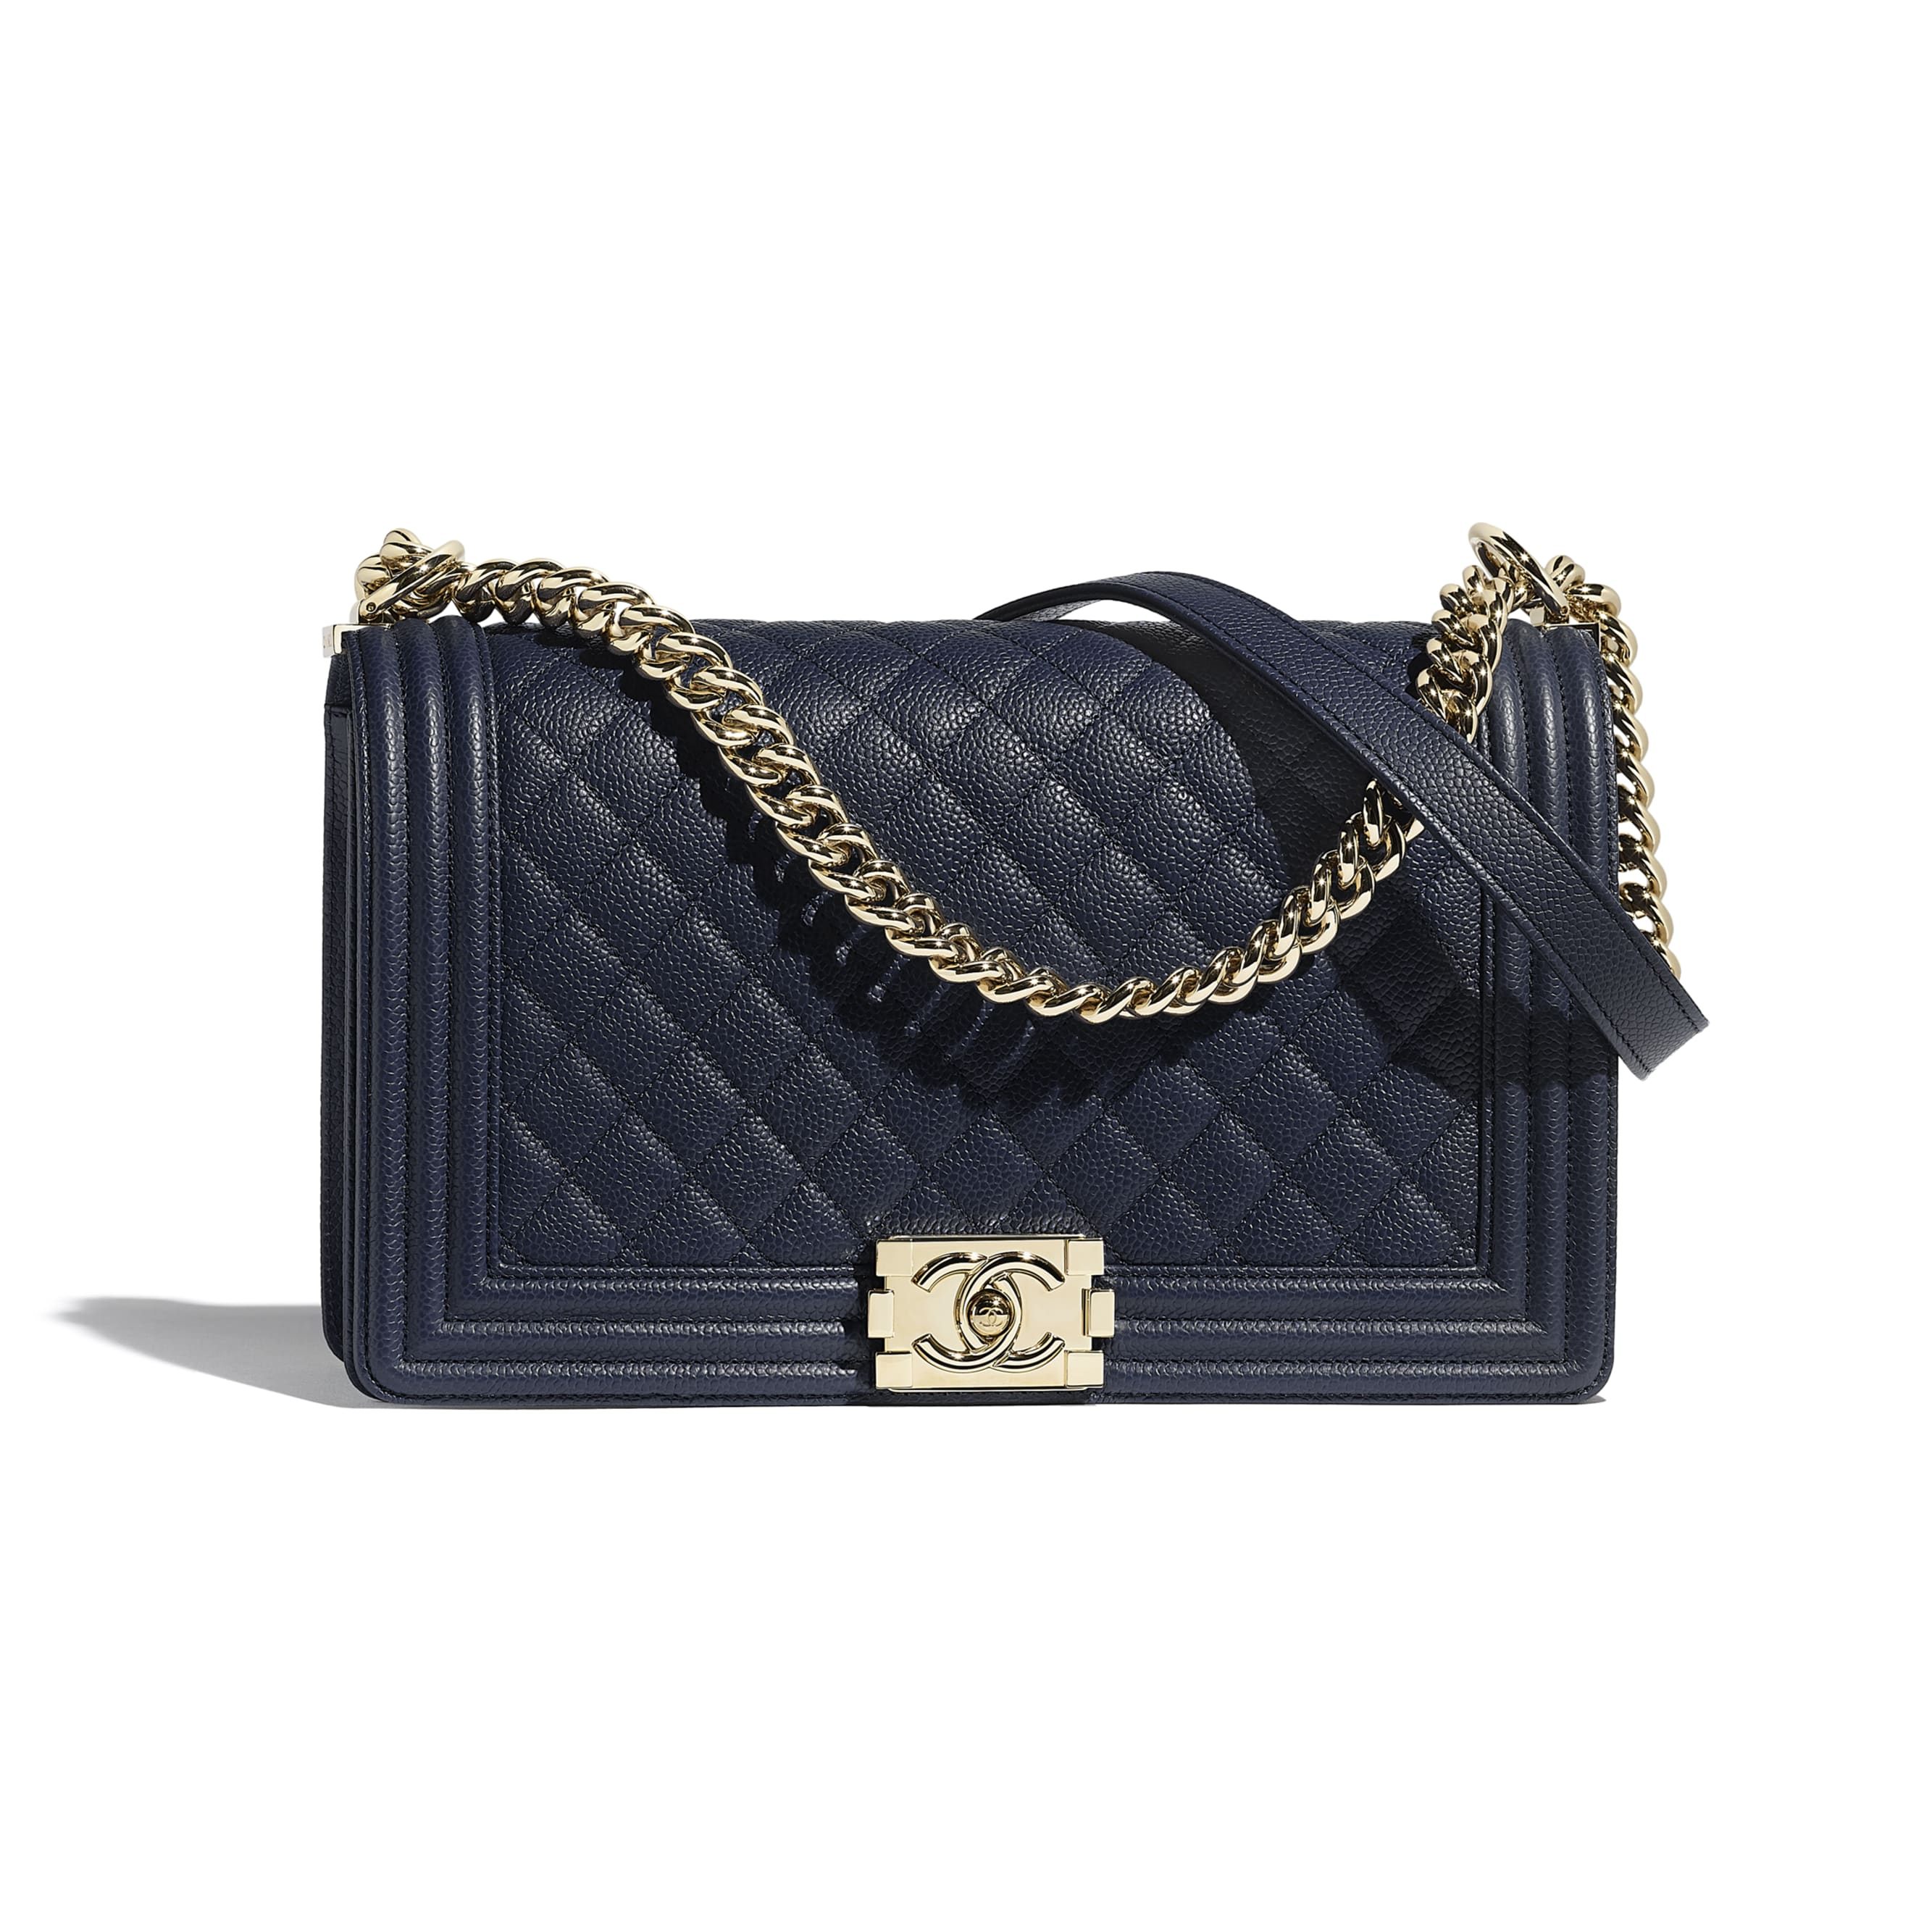 Large BOY CHANEL Handbag - Navy Blue - Grained Calfskin & Gold-Tone Metal - Default view - see standard sized version